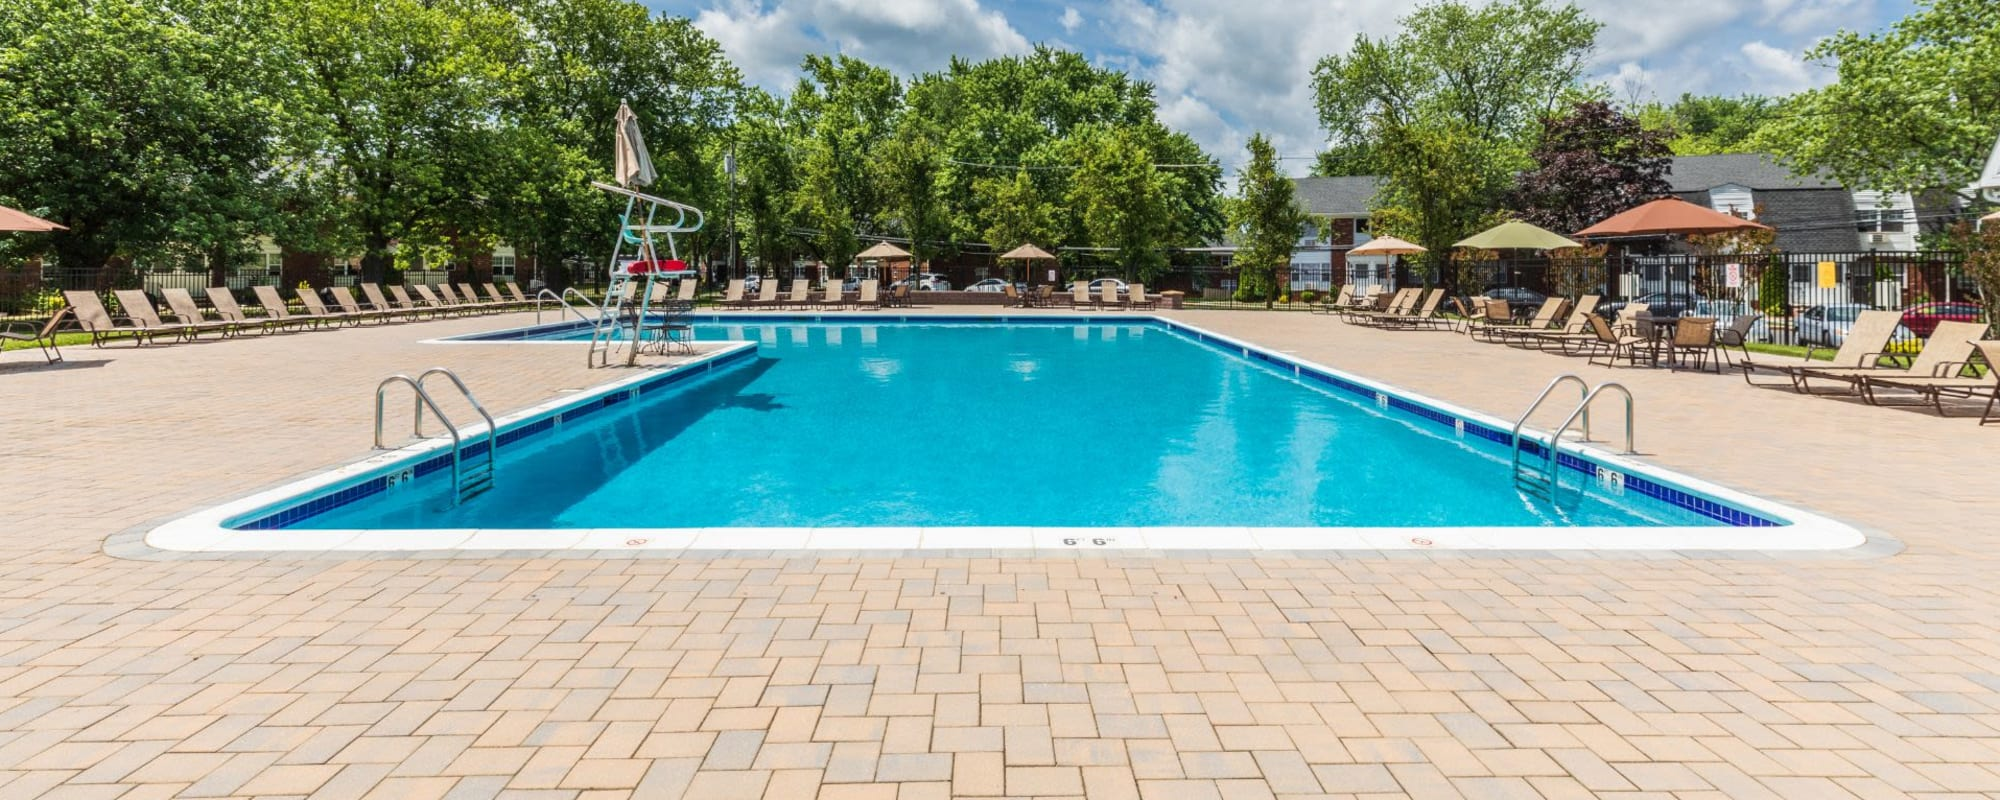 Amenities at Nieuw Amsterdam Village in South Amboy, New Jersey